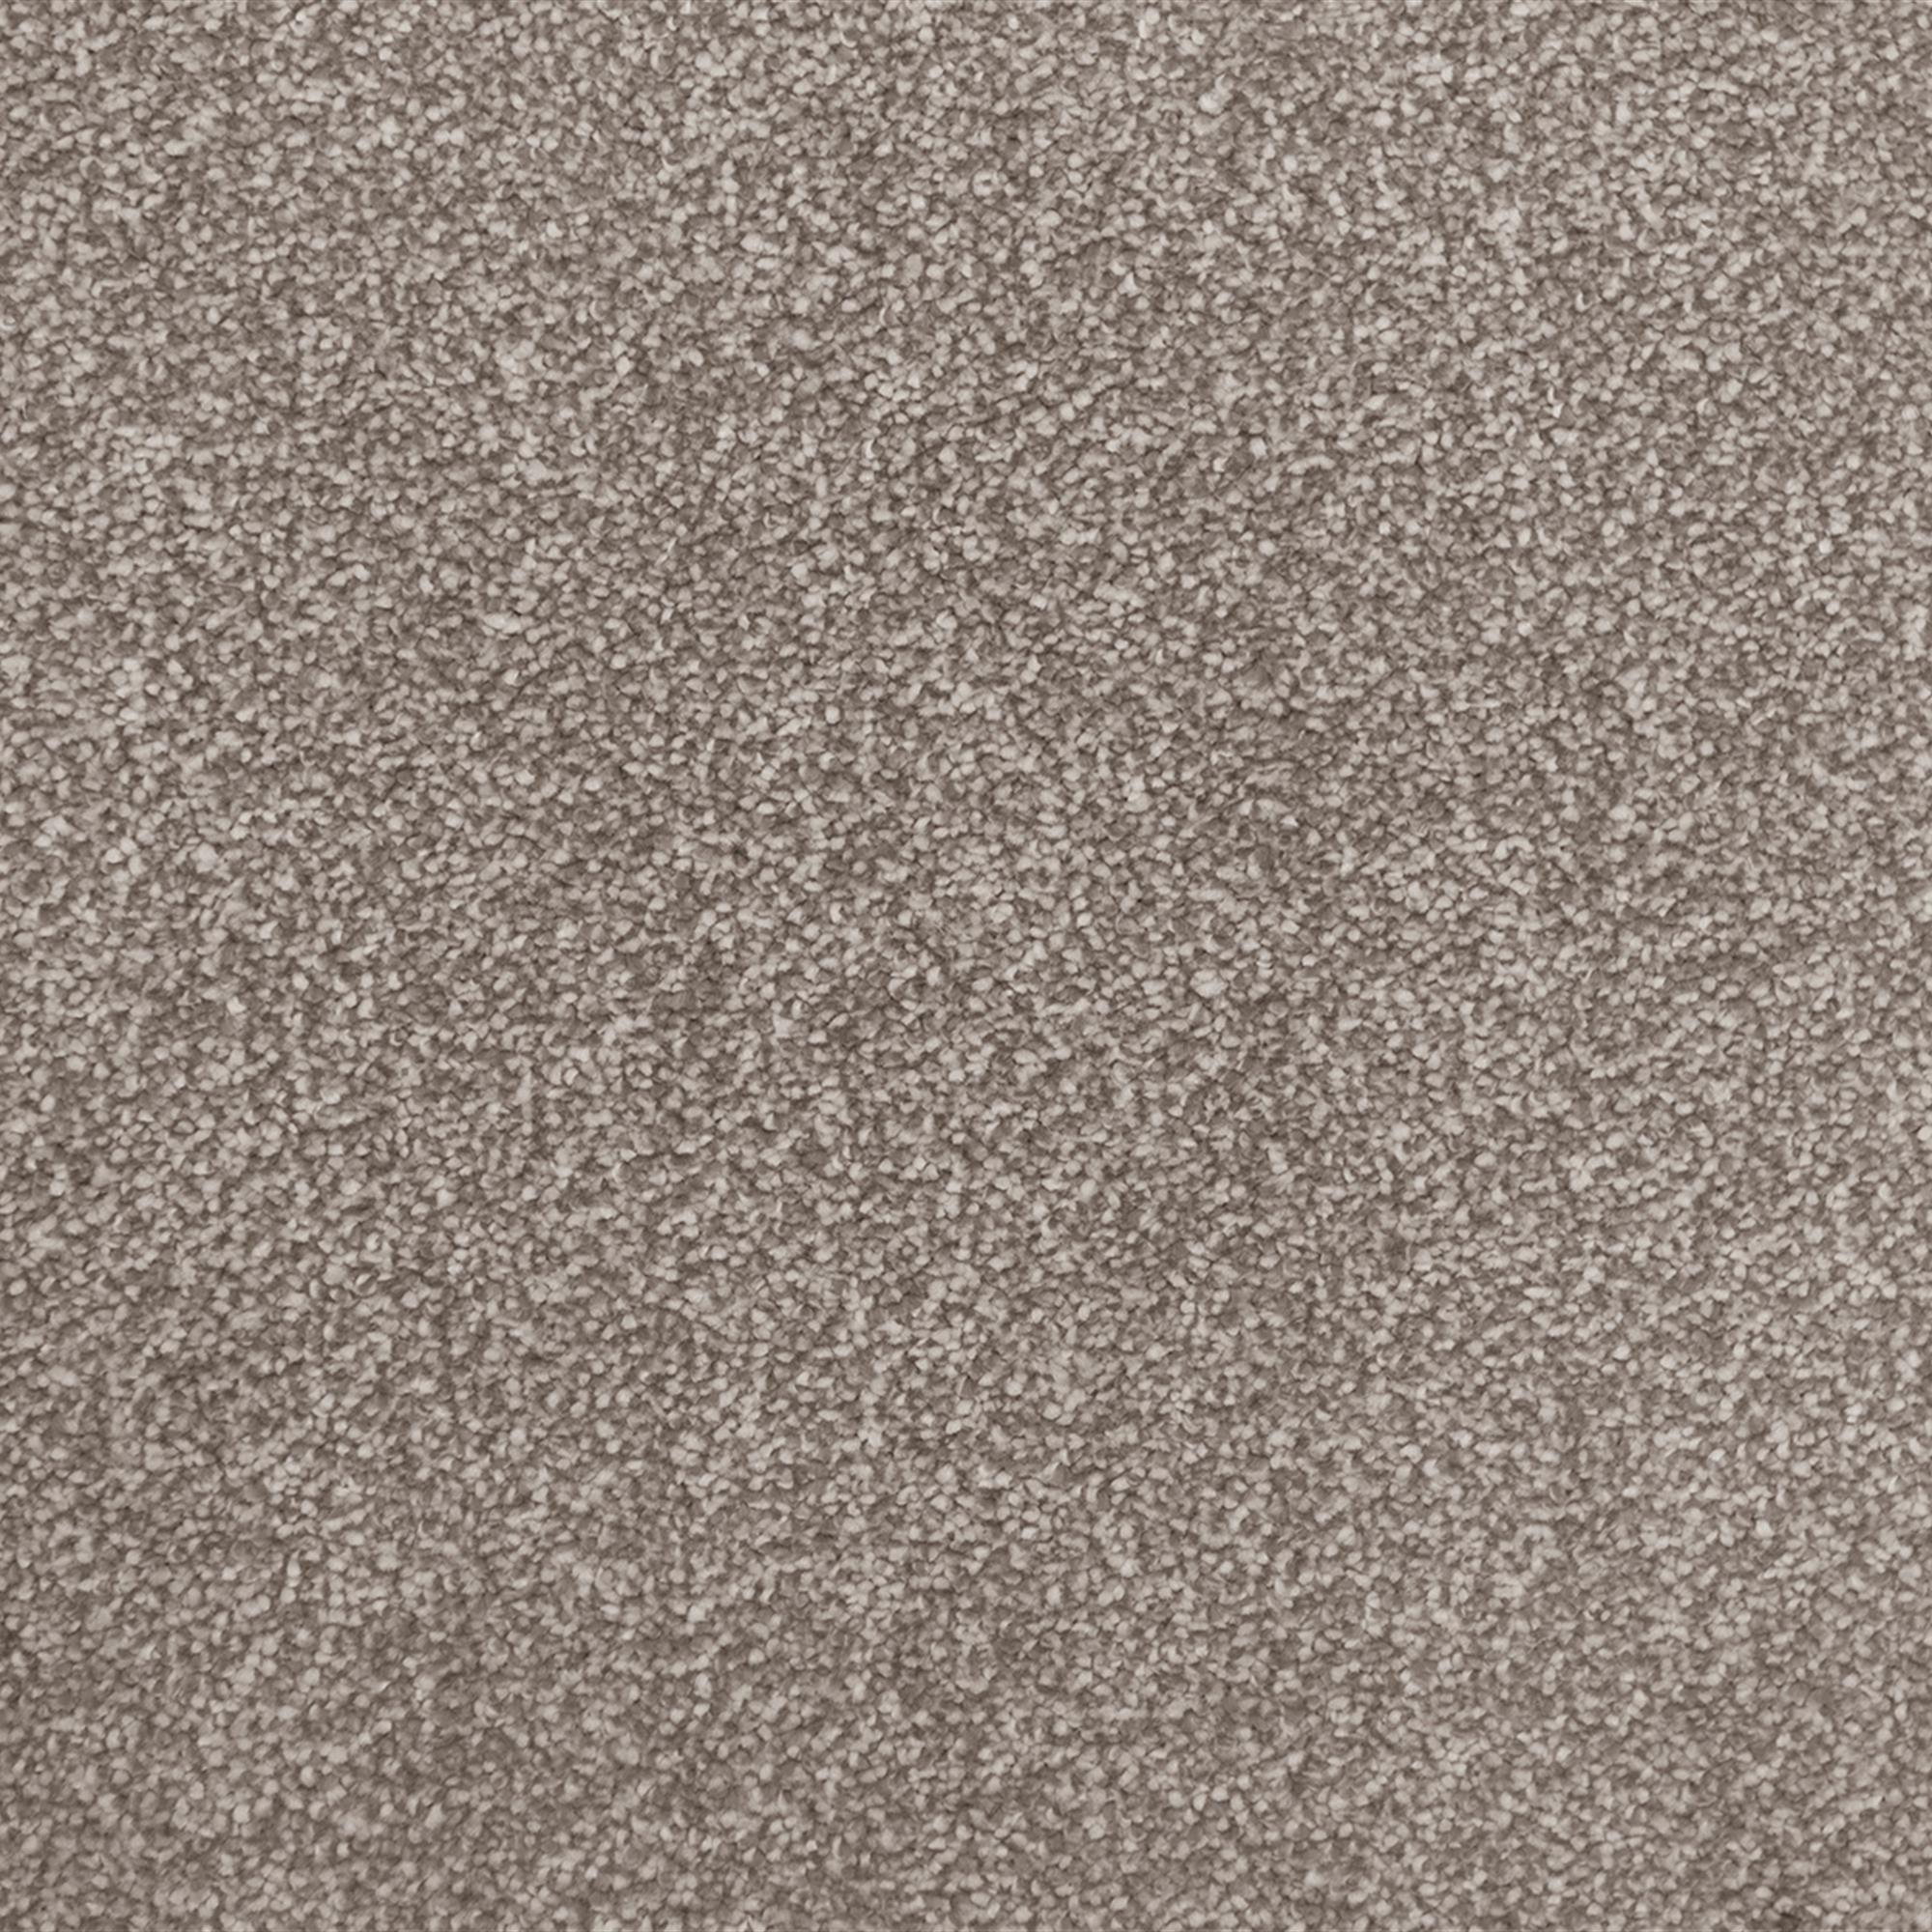 Invictus Peconic Carpet, 41 Linseed, swatch